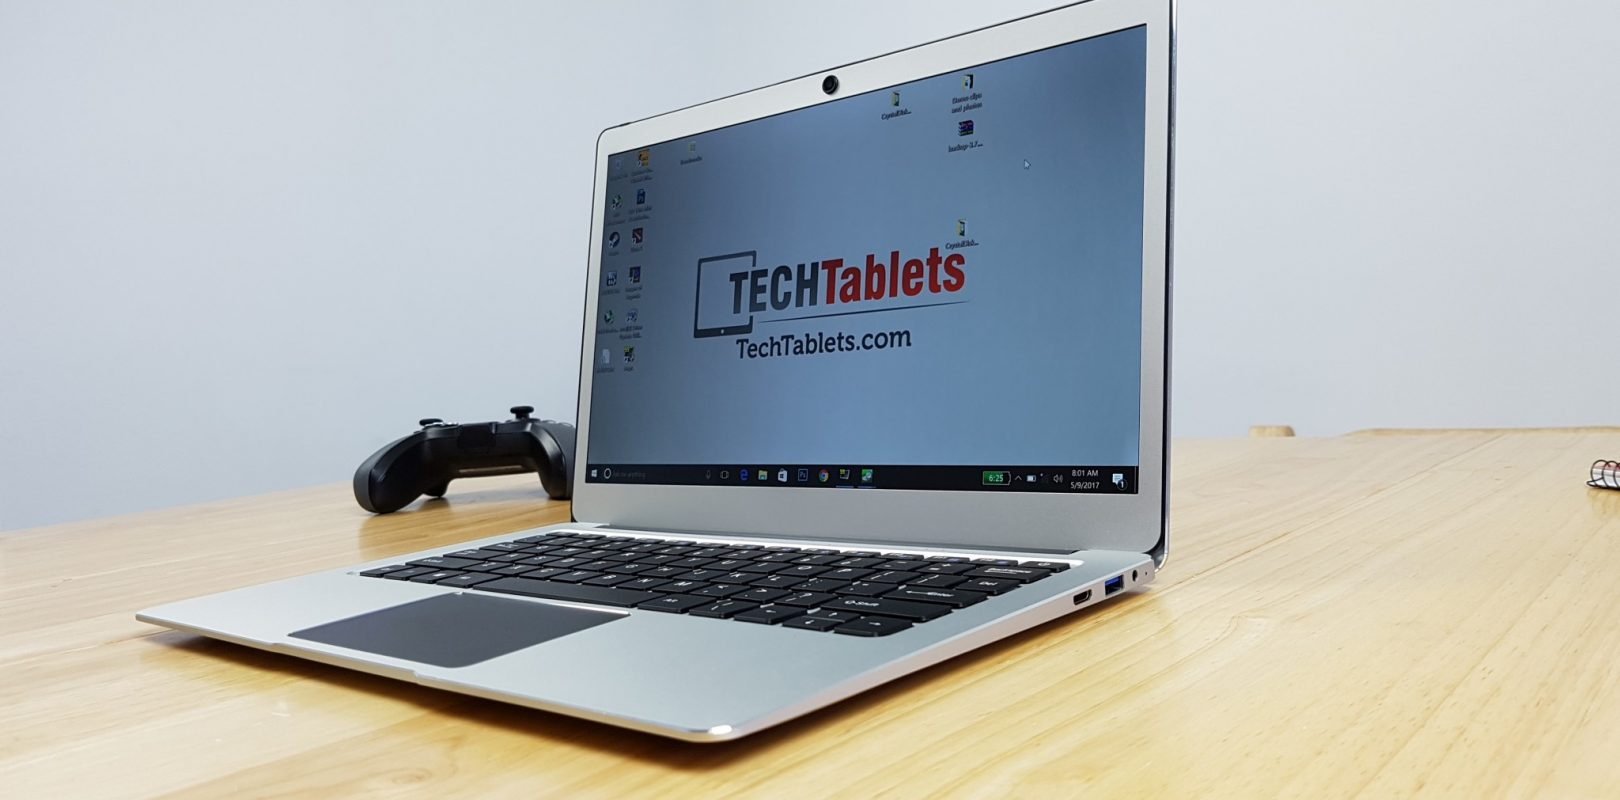 Hands On With The Wifi Ac Version 3 Ezbook 3 Pro Techtablets